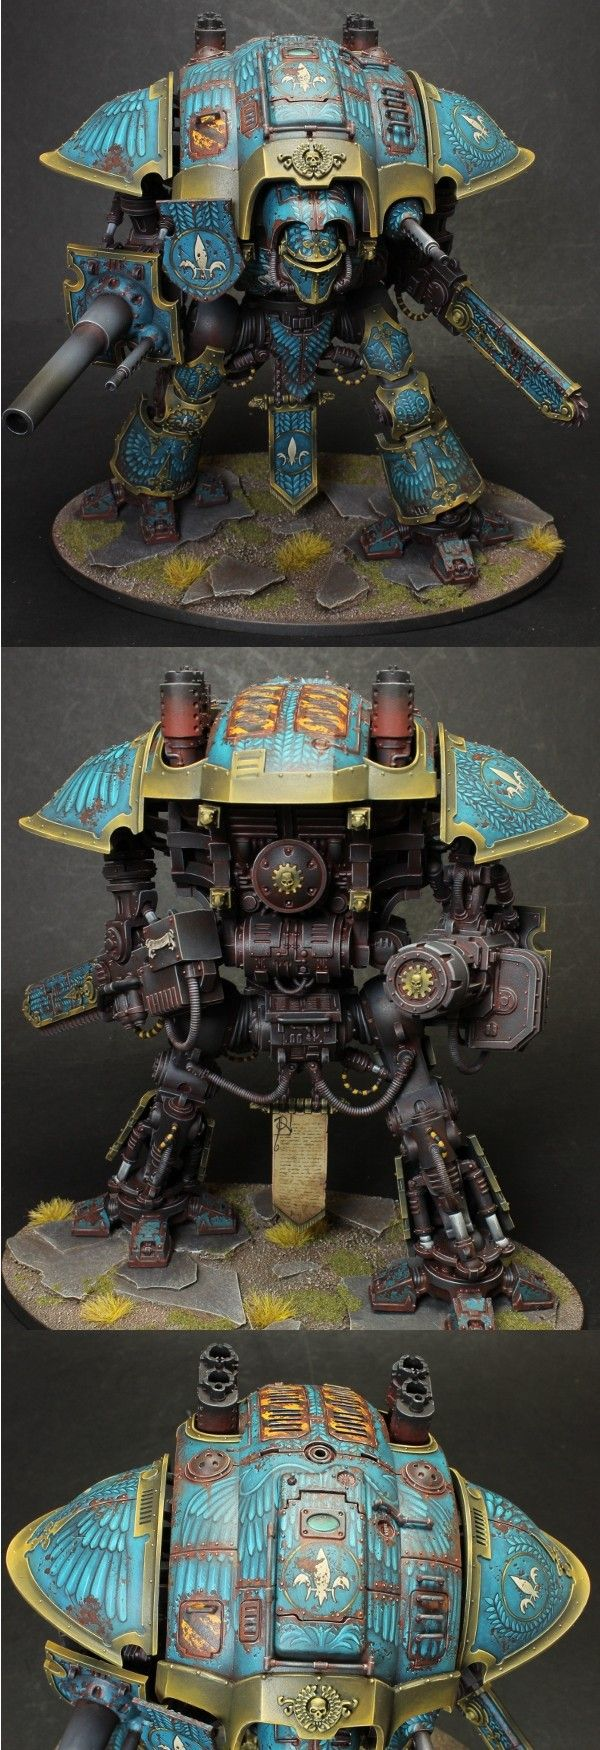 Warhammer 40k, Imperial Knight, with fantastic paint job and just dripping with freehand work!